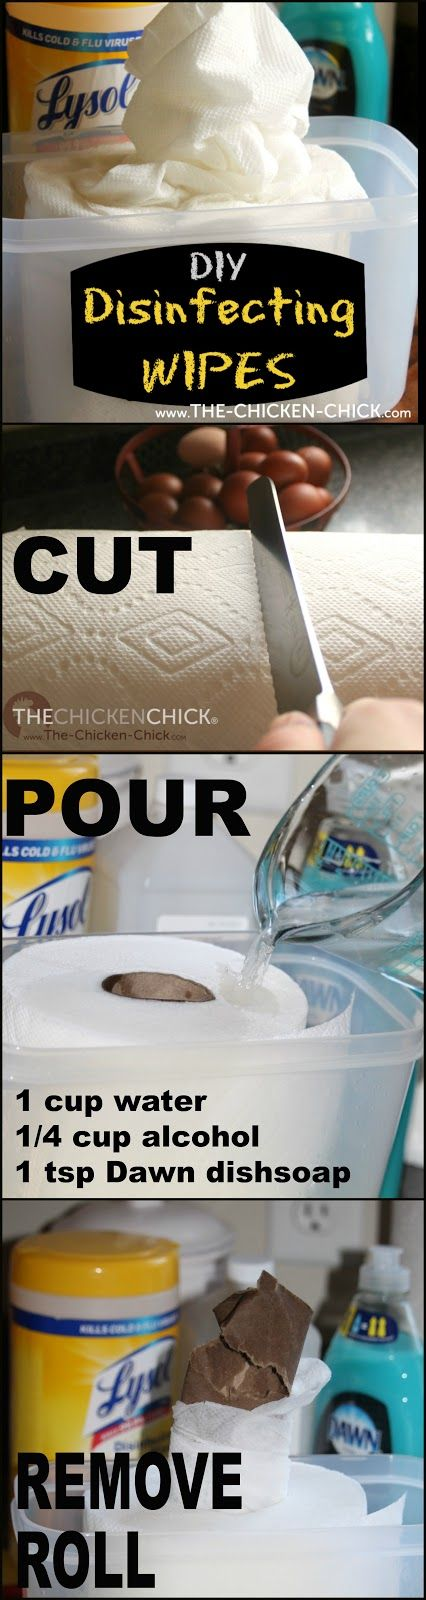 The Chicken Chick®: Kitchen Cleaning Hack: DIY Disinfecting Wipes!